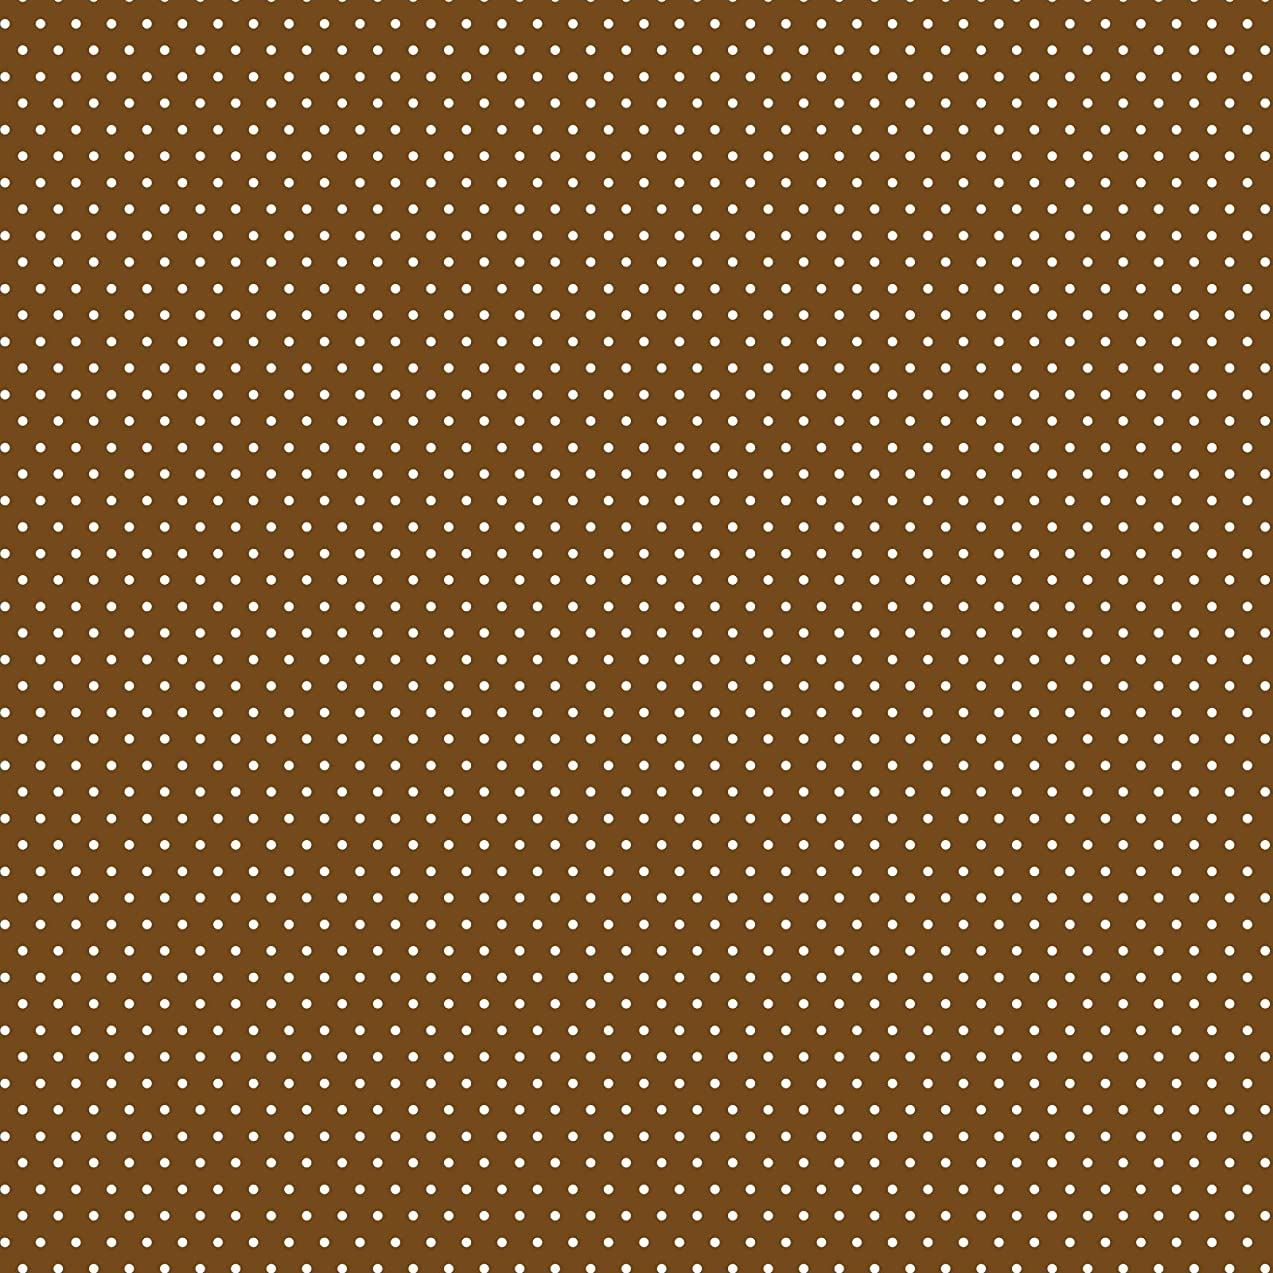 American Crafts Core'dinations 12 Pack of 12 x 12 Inch Patterned Paper Brown Small Dot,